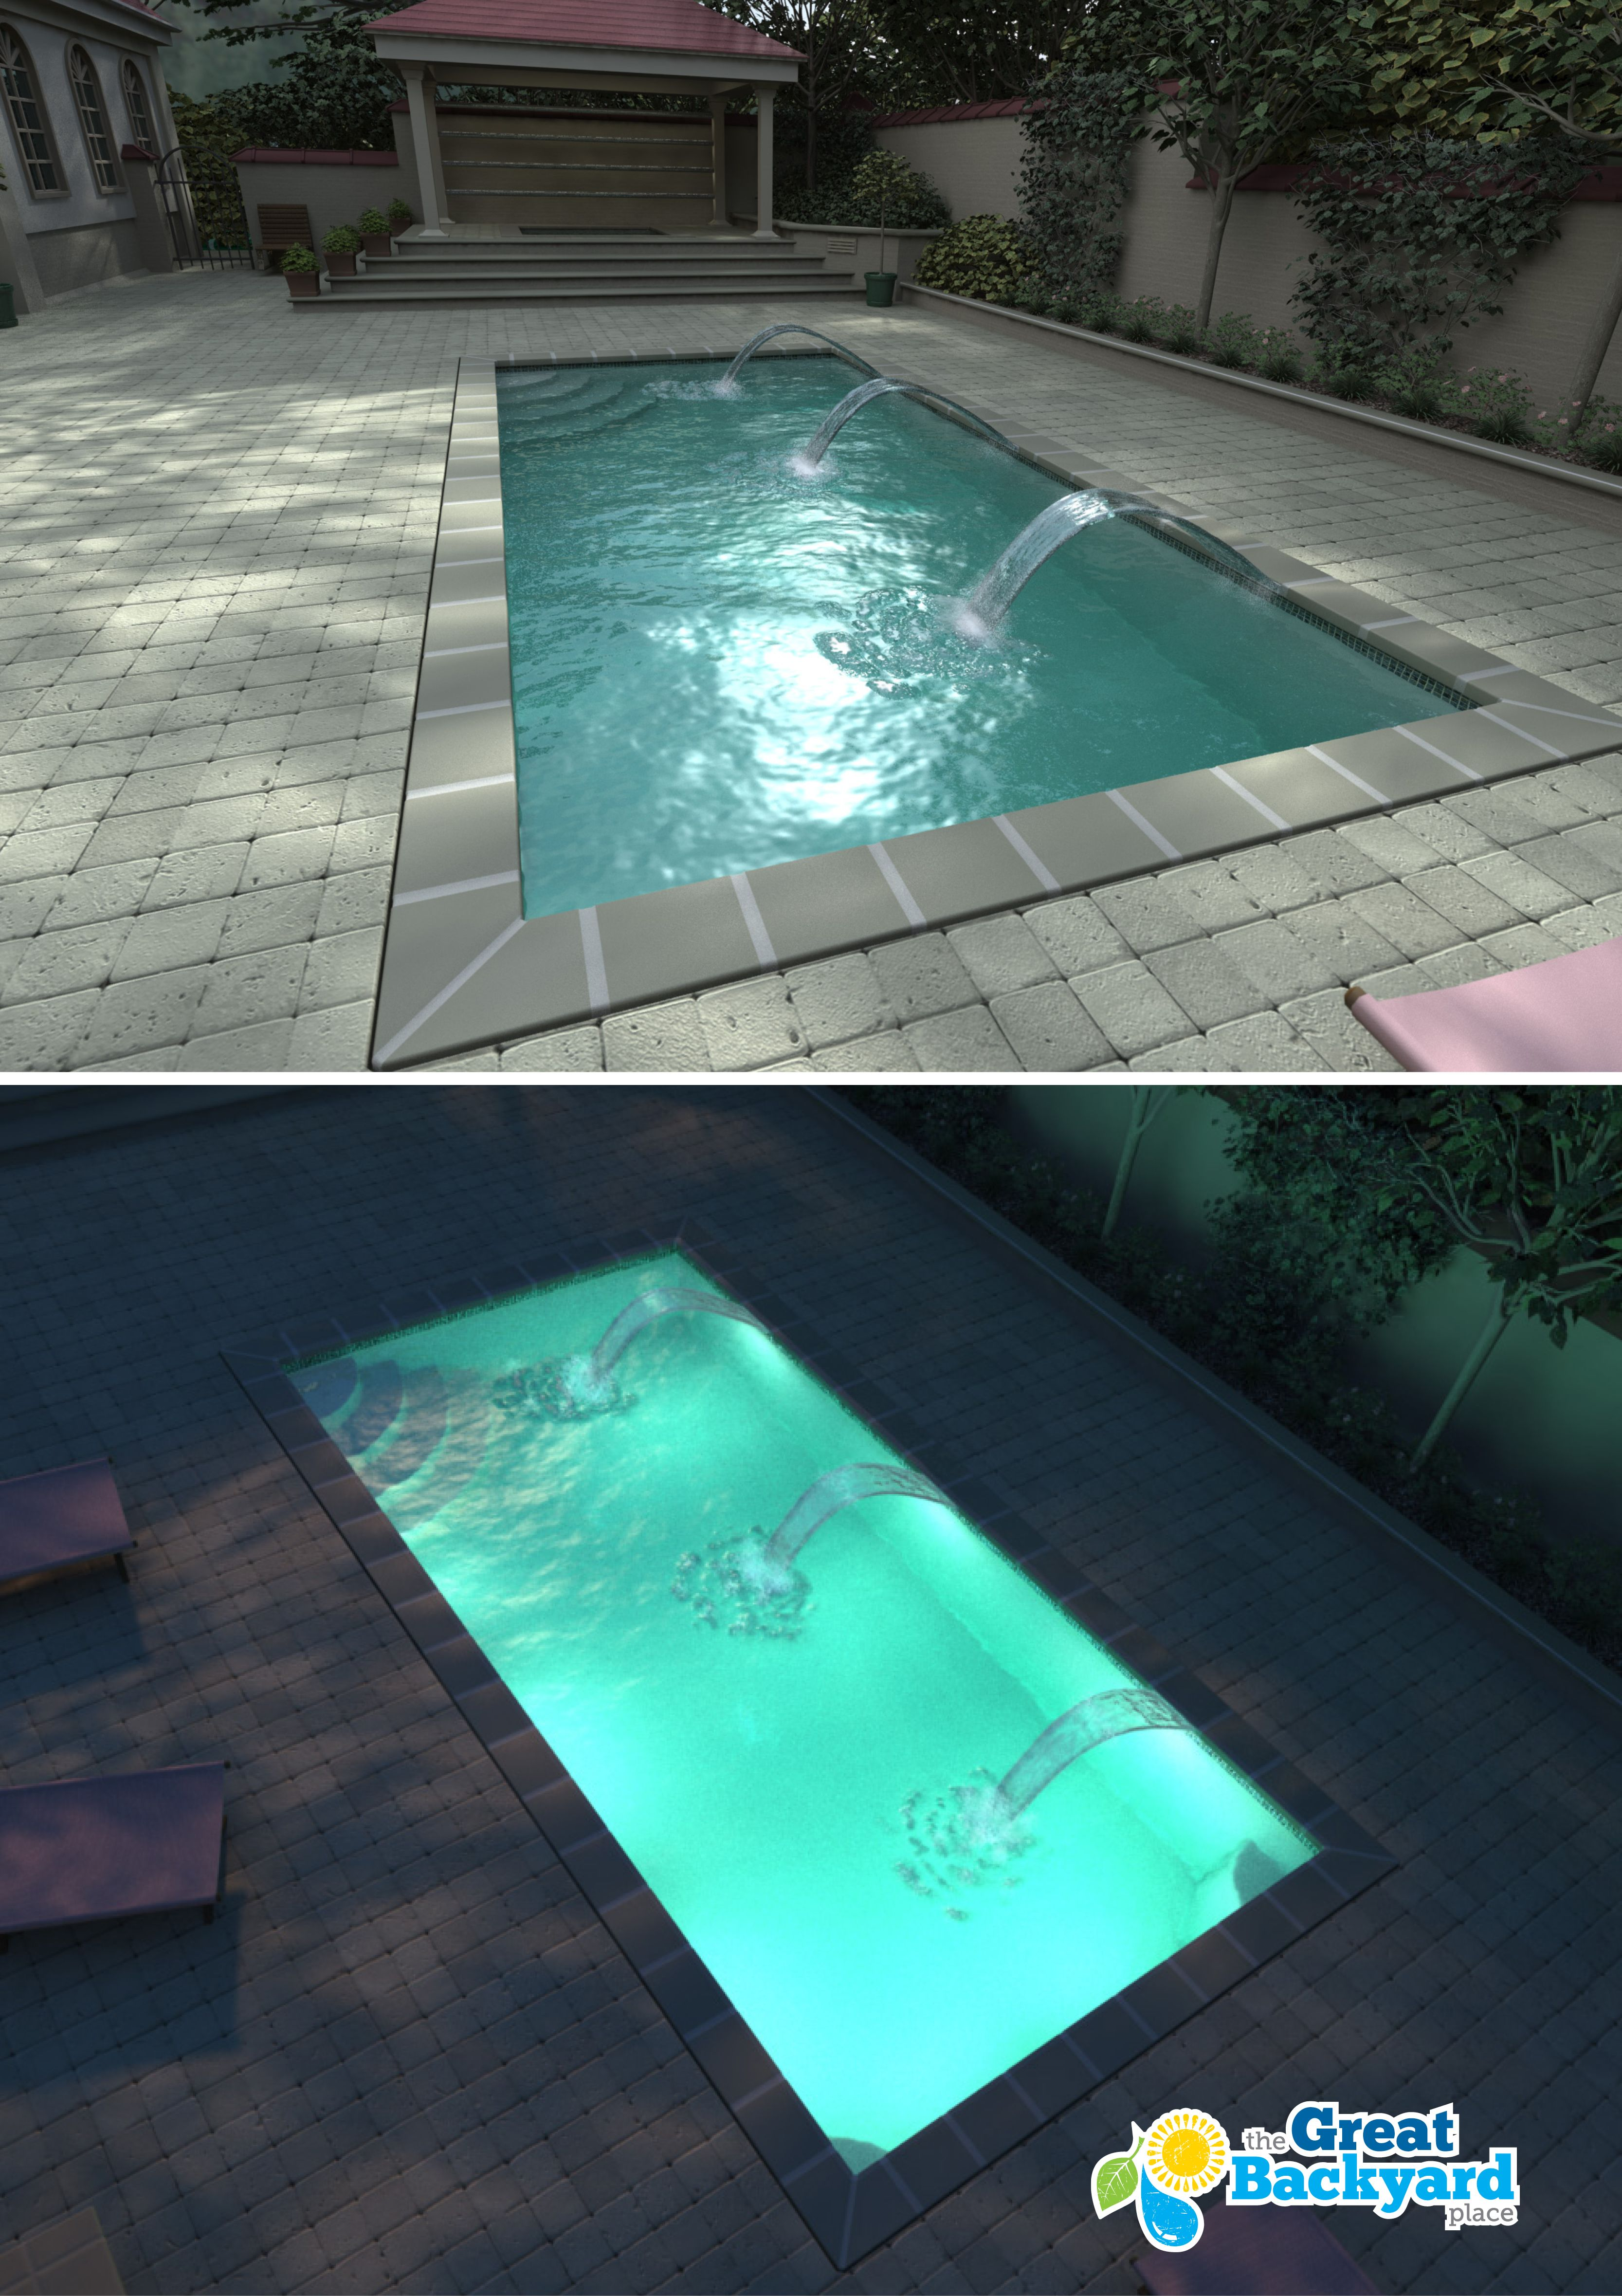 Beautiful The Helios Compact Rectangular Shape Is A Great Option For Those Looking  For A Smaller Sized Rectangle Pool. It Is Also An Excellent Model For  Adding Water ...